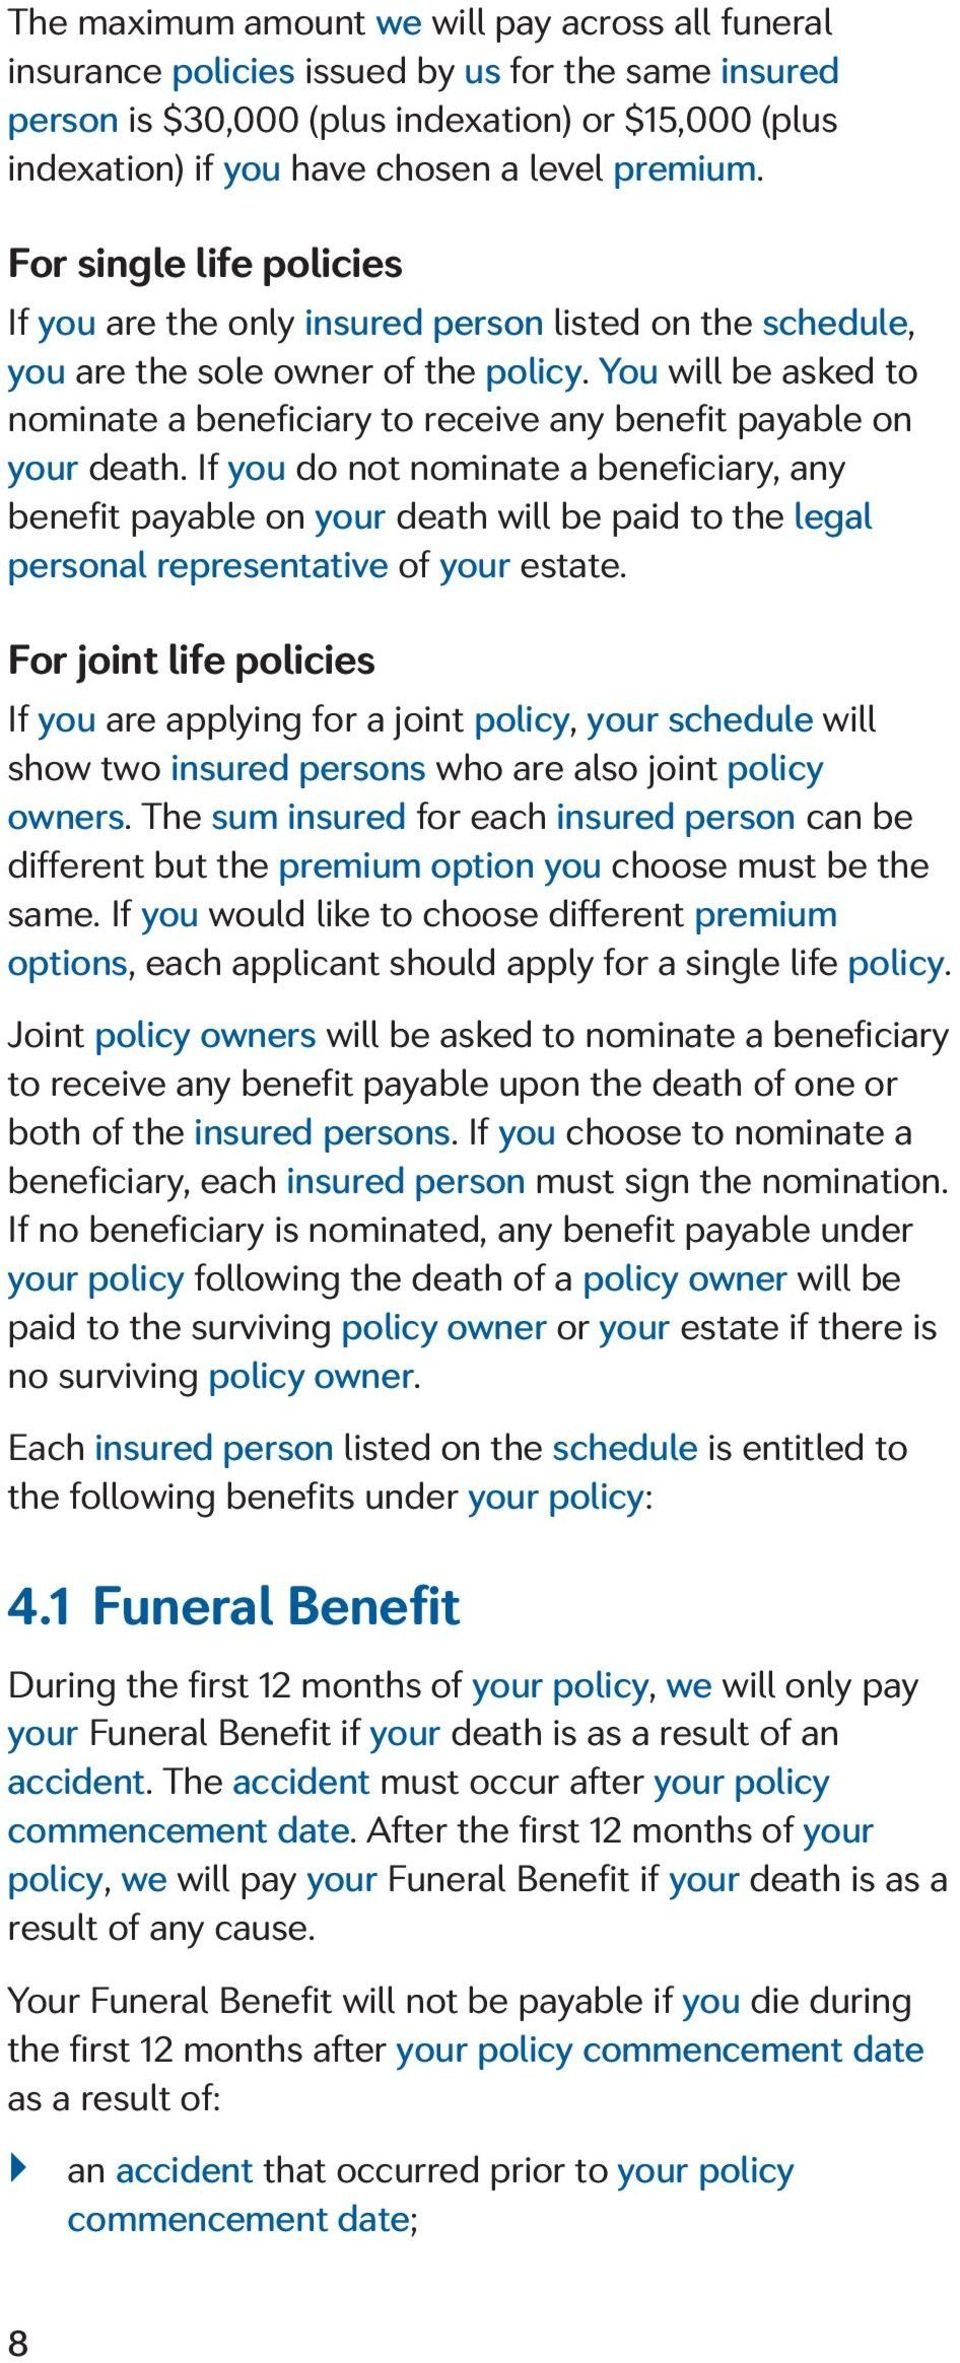 You will be asked to nominate a beneficiary to receive any benefit payable on your death.